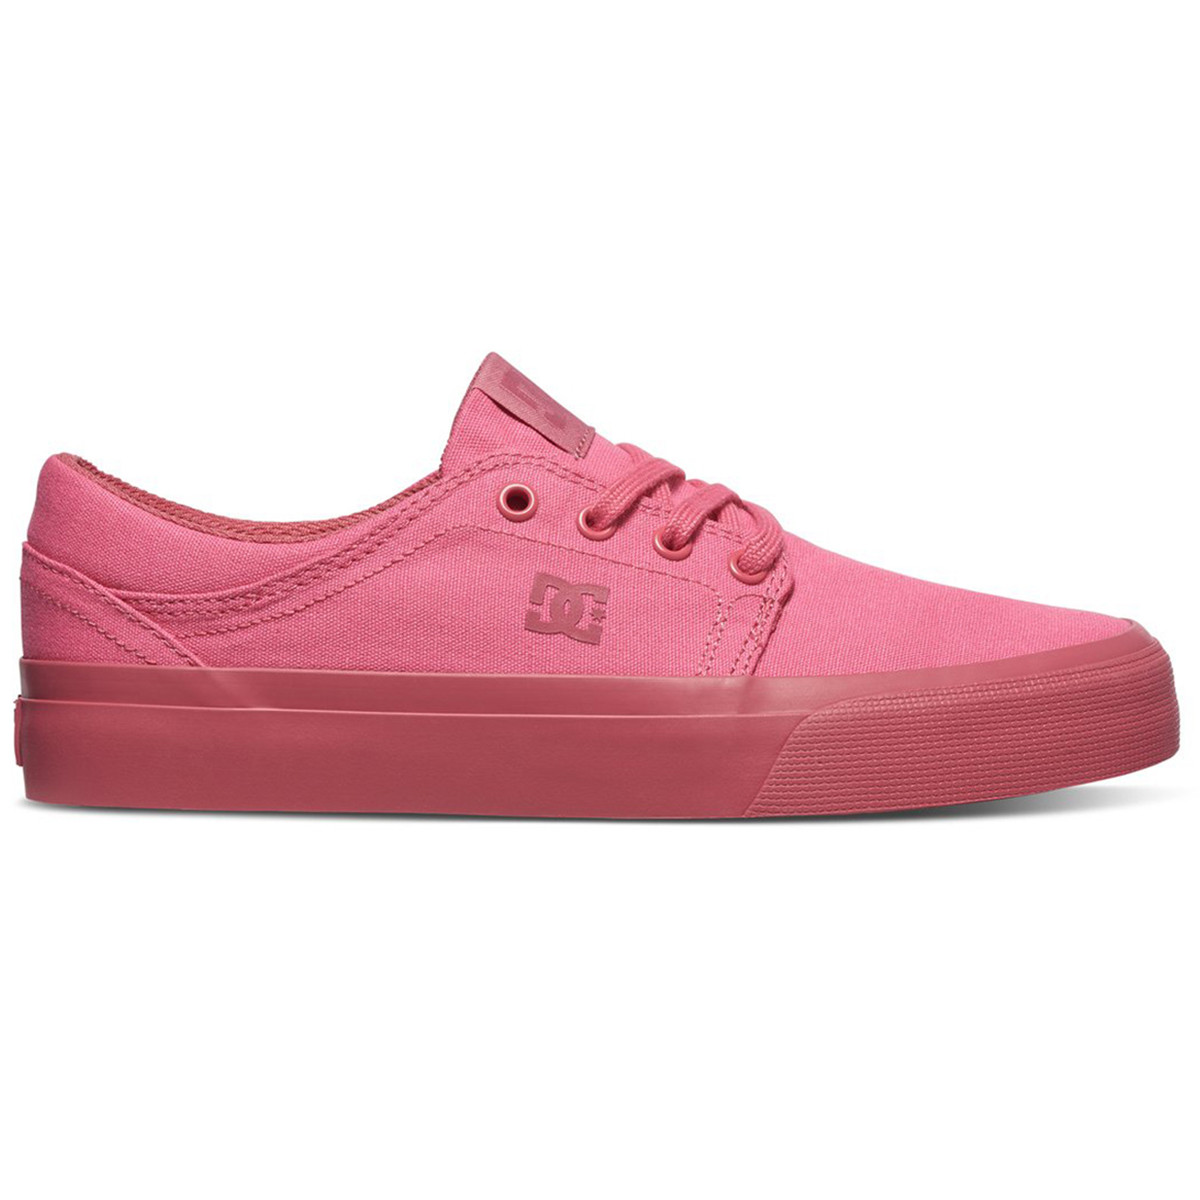 Trase Tx Chaussure Femme